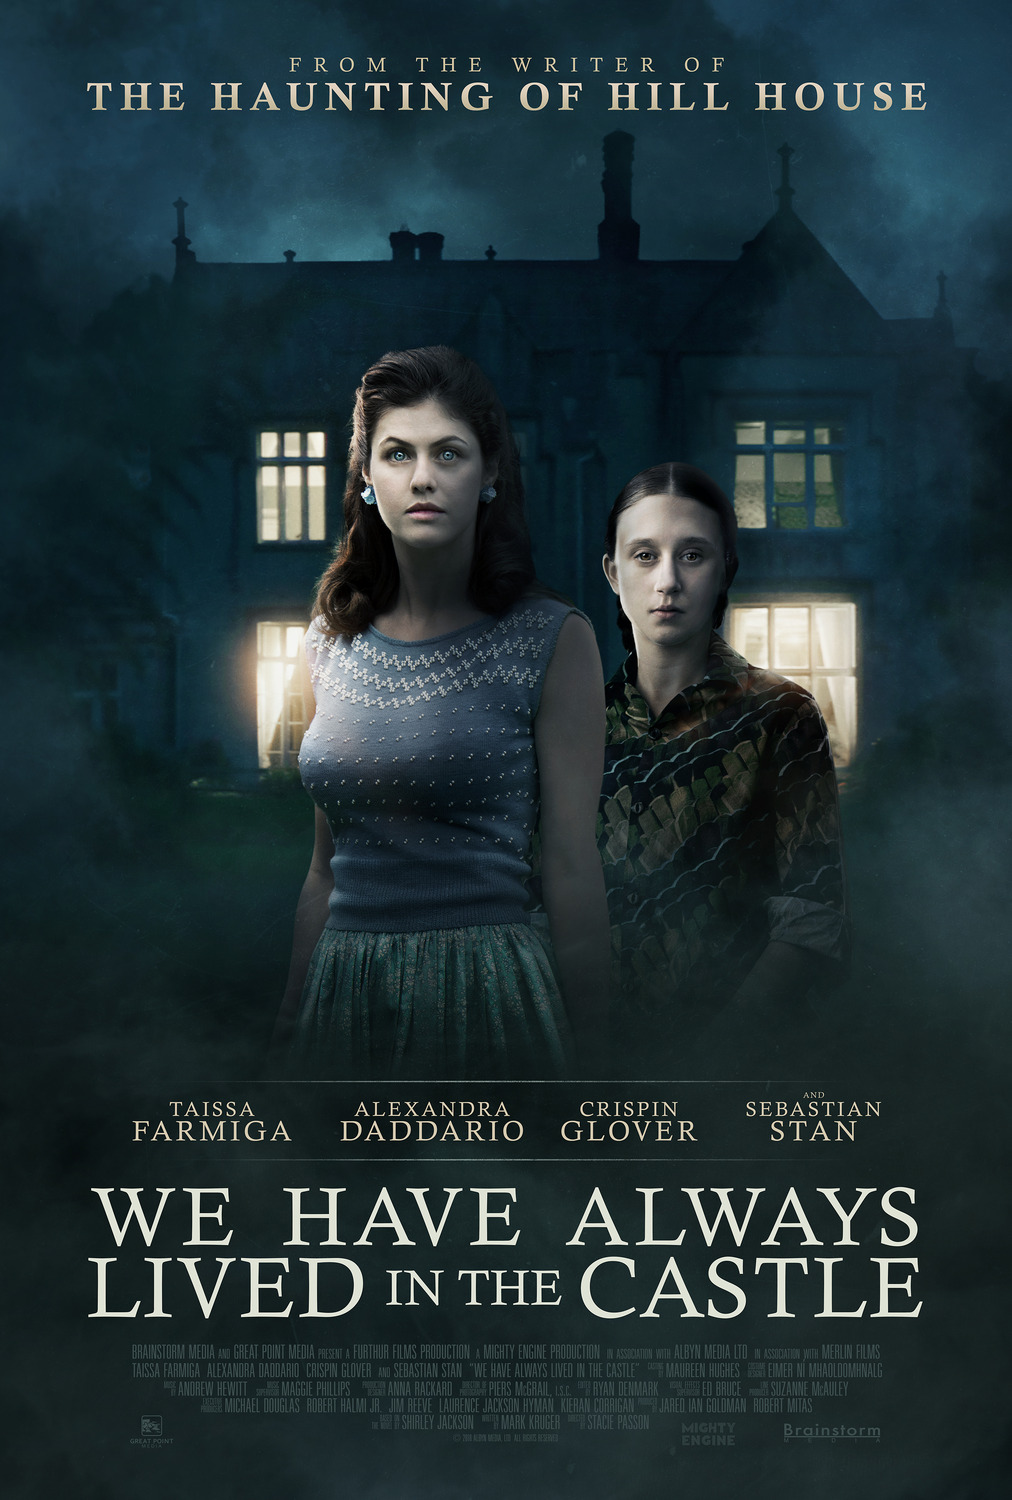 We Have Always Lived In The Castle We Have Always Lived In The Castle 2018 Film Cinemagia Ro